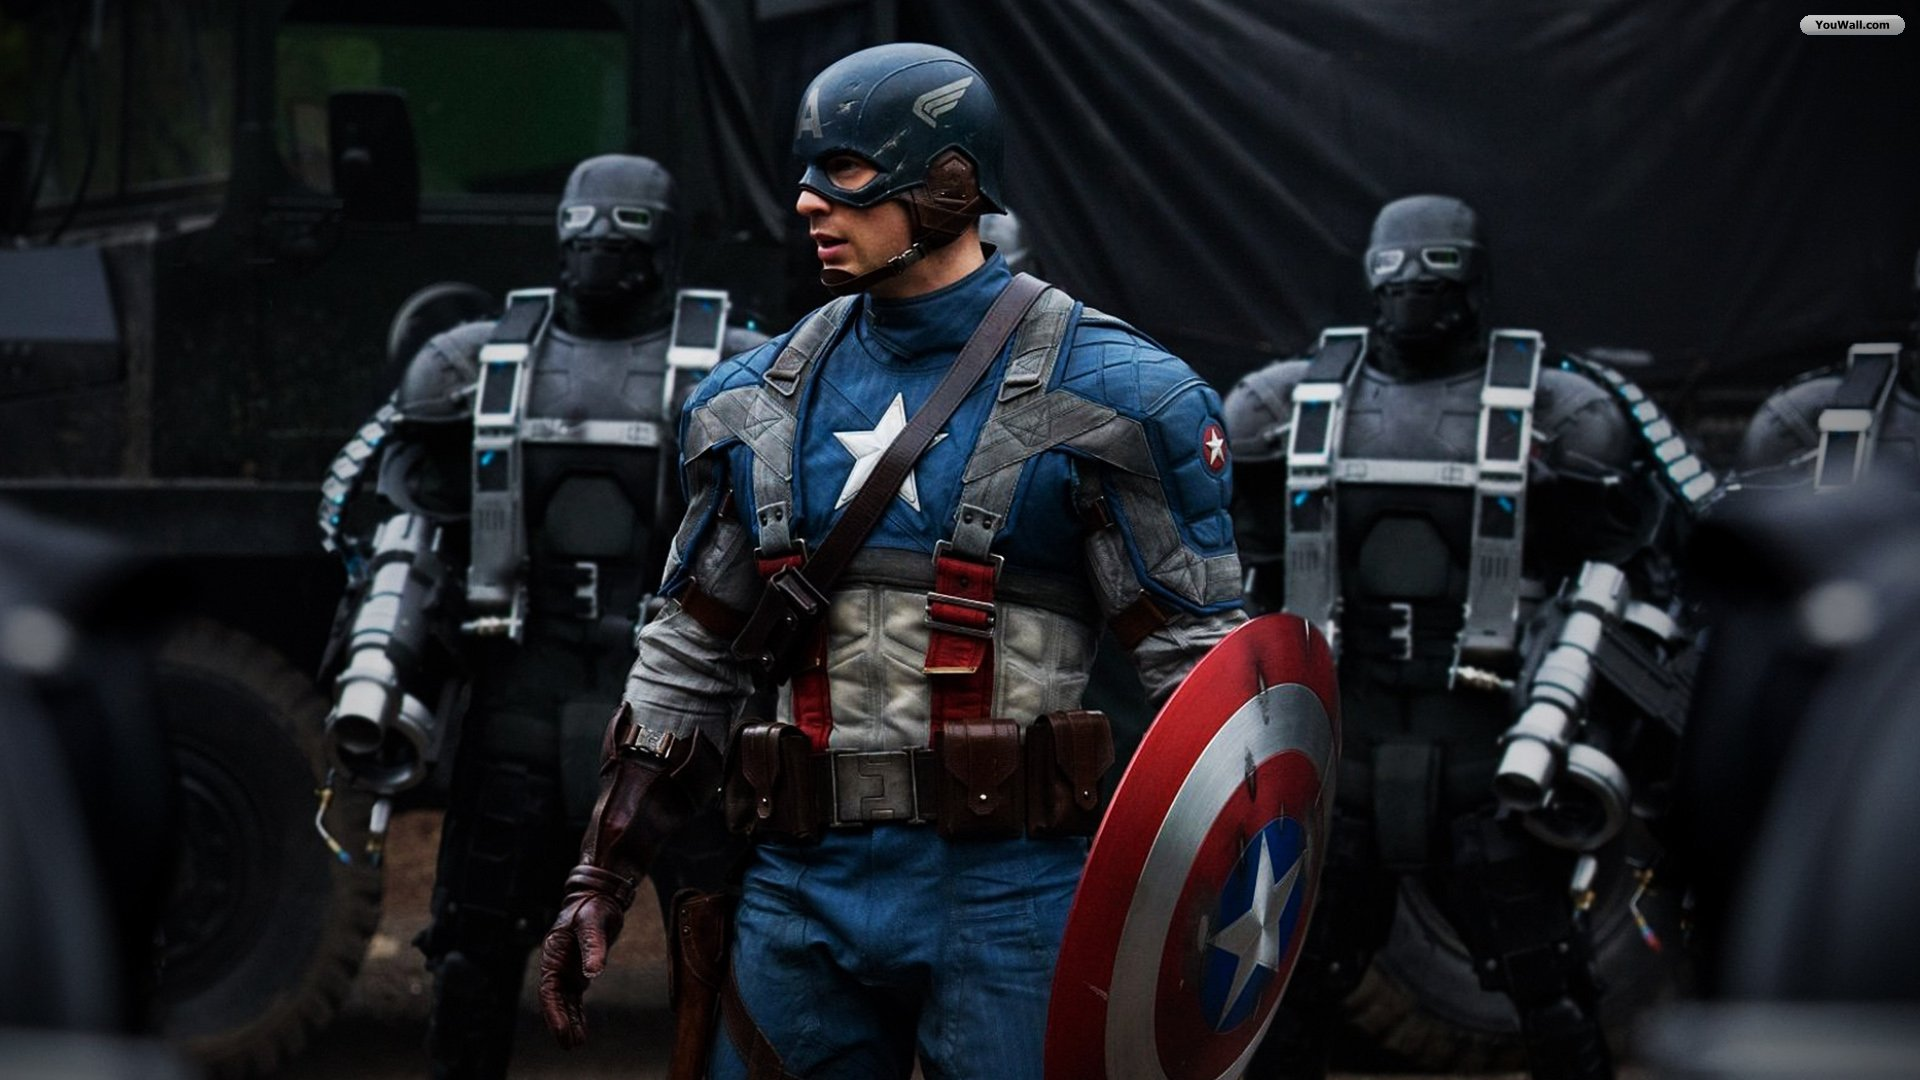 set as desktop wallpaper captain america wallpaper 1920x1080 231 kb 1920x1080